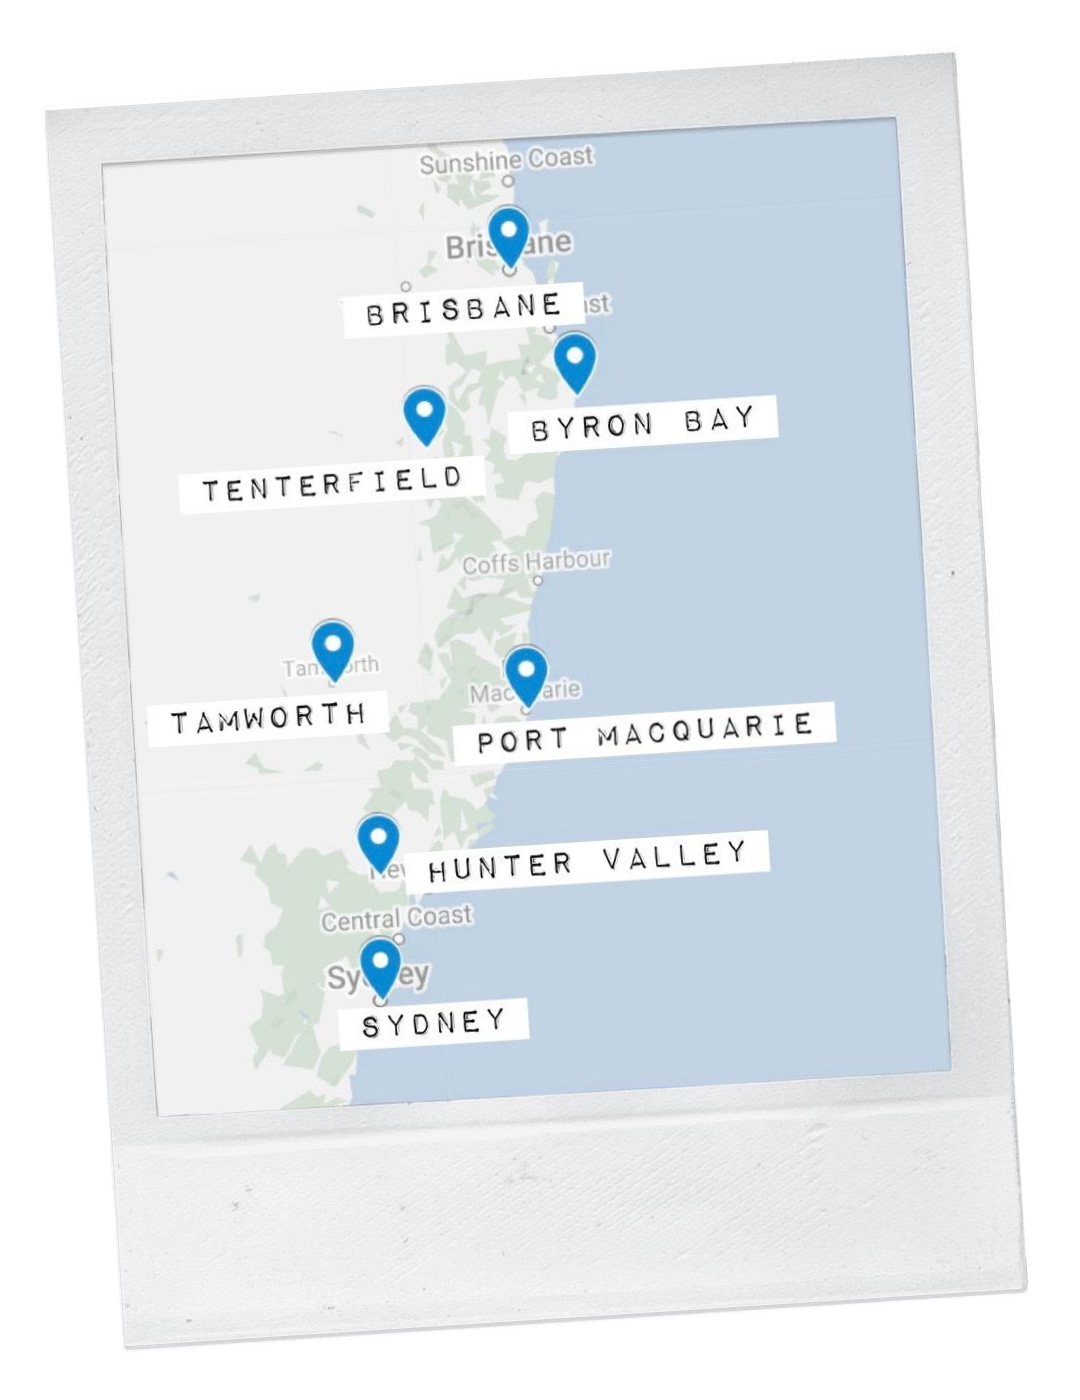 Map view of a Sydney to Brisbane road trip